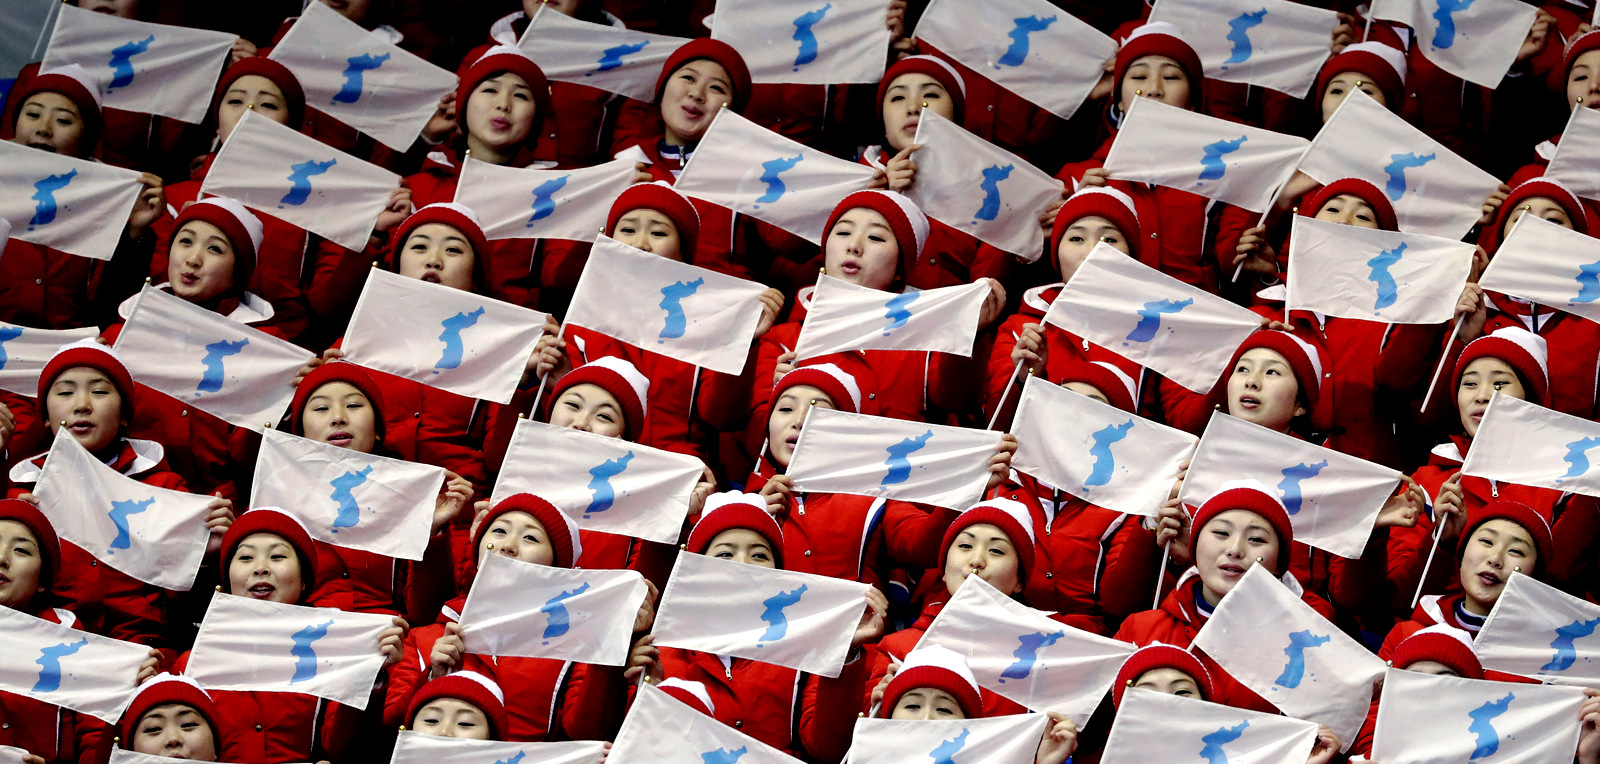 North Korea supporters wave the Korean unification flag ahead of the pairs free skate figure skating final in the Gangneung Ice Arena at the 2018 Winter Olympics in Gangneung, South Korea, Feb. 15, 2018. (AP/Bernat Armangue)